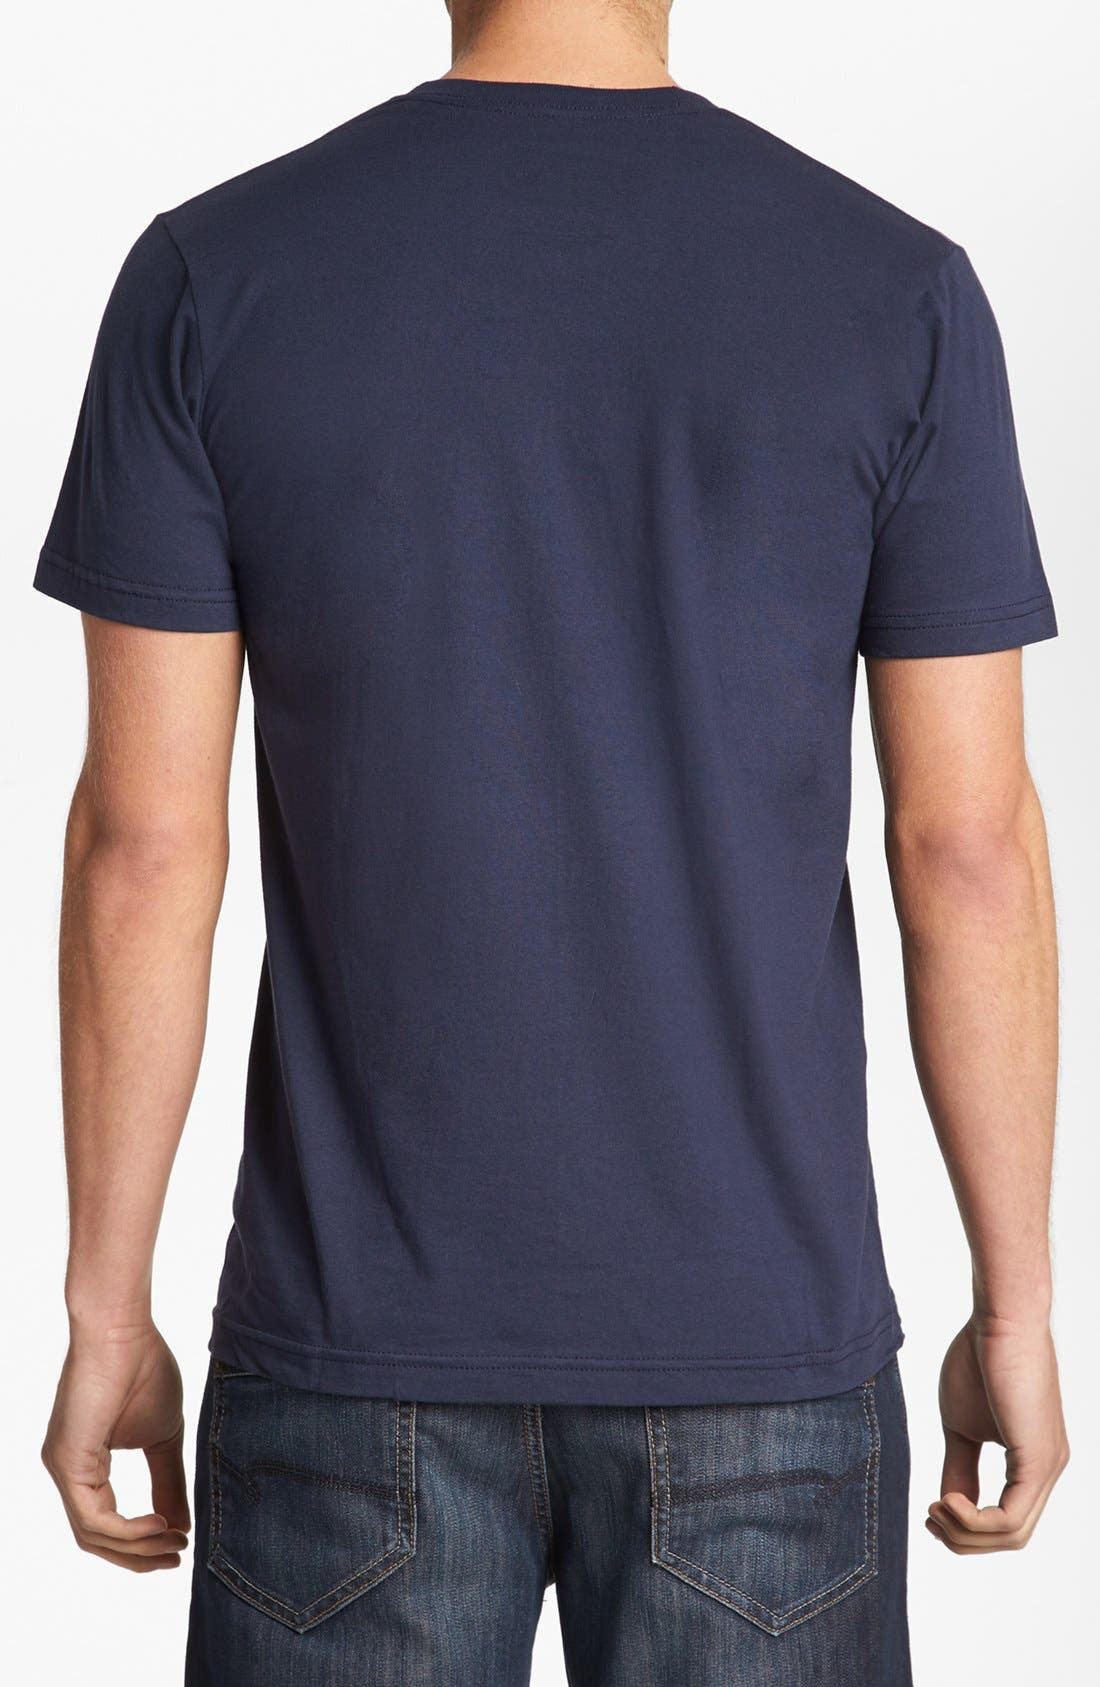 Alternate Image 2  - Casual Industrees 'Seatown' Graphic T-Shirt